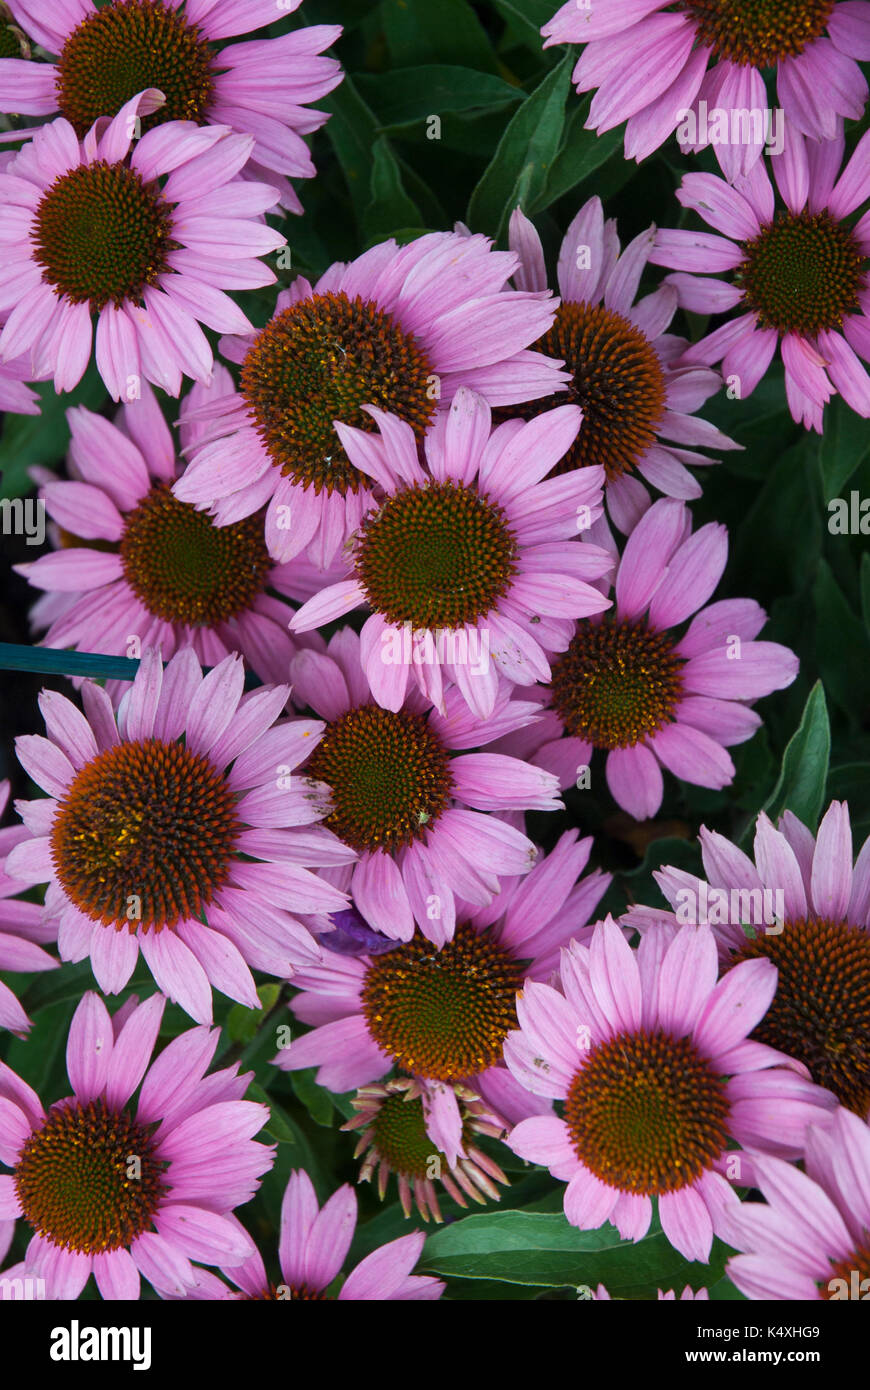 swathe of purple echinacea, cone flower, asteraceae, herbaceous, heliantheae flowering in summer and autumn - Stock Image